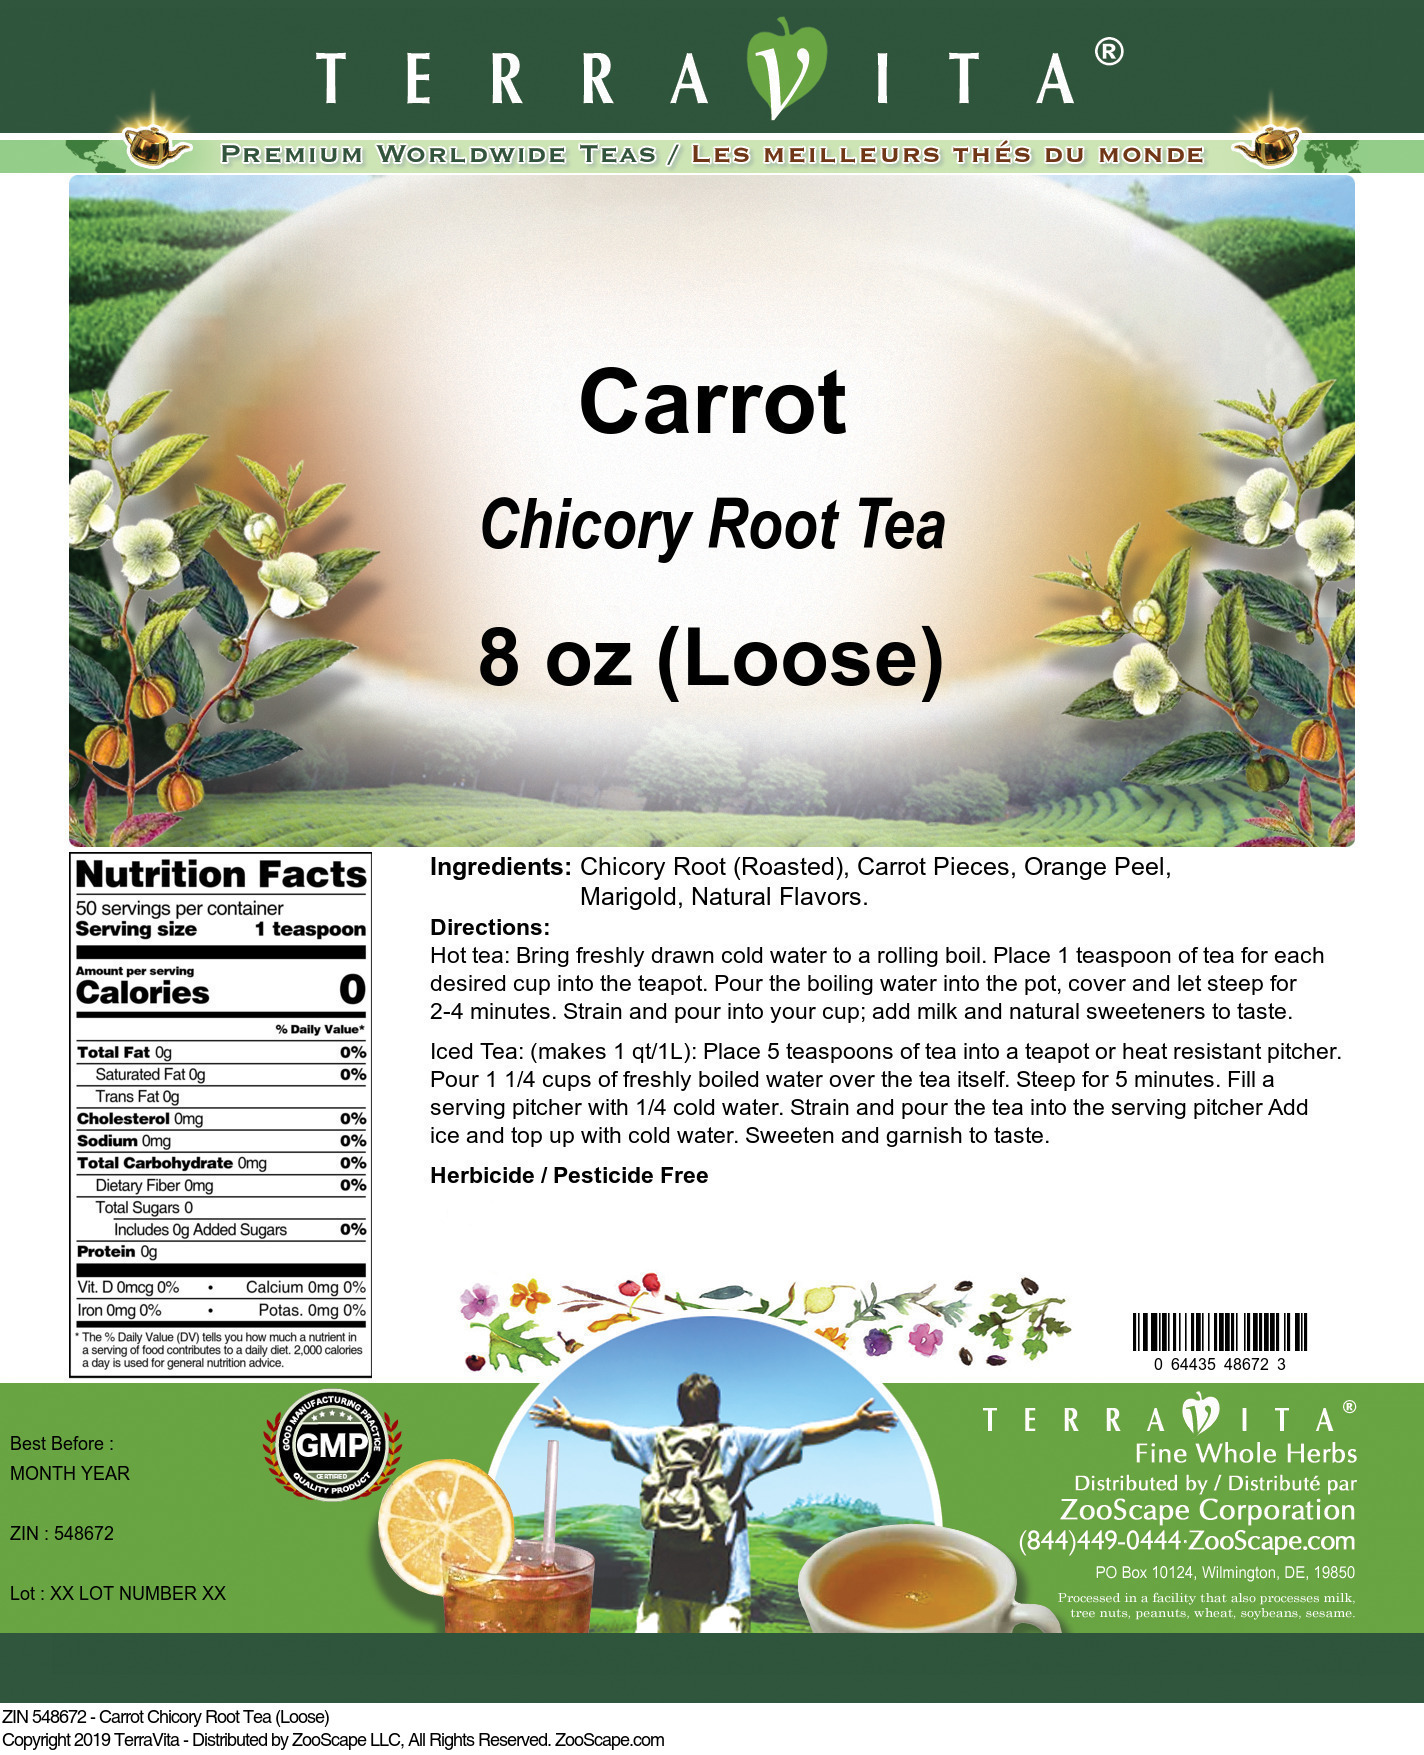 Carrot Chicory Root